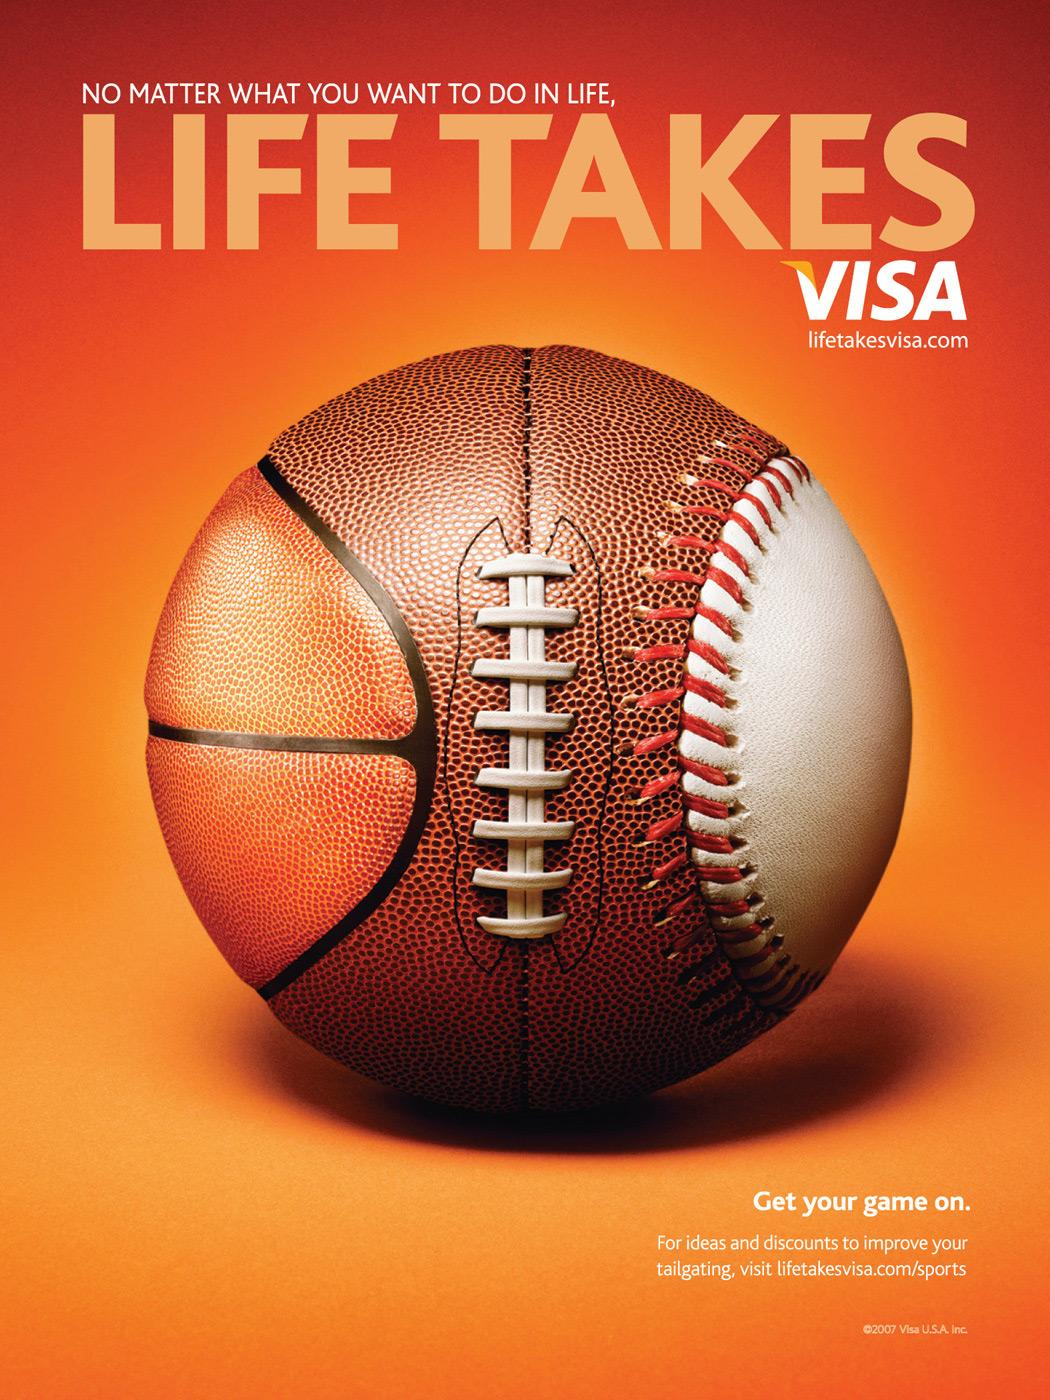 Life Takes Visa, 3 ball